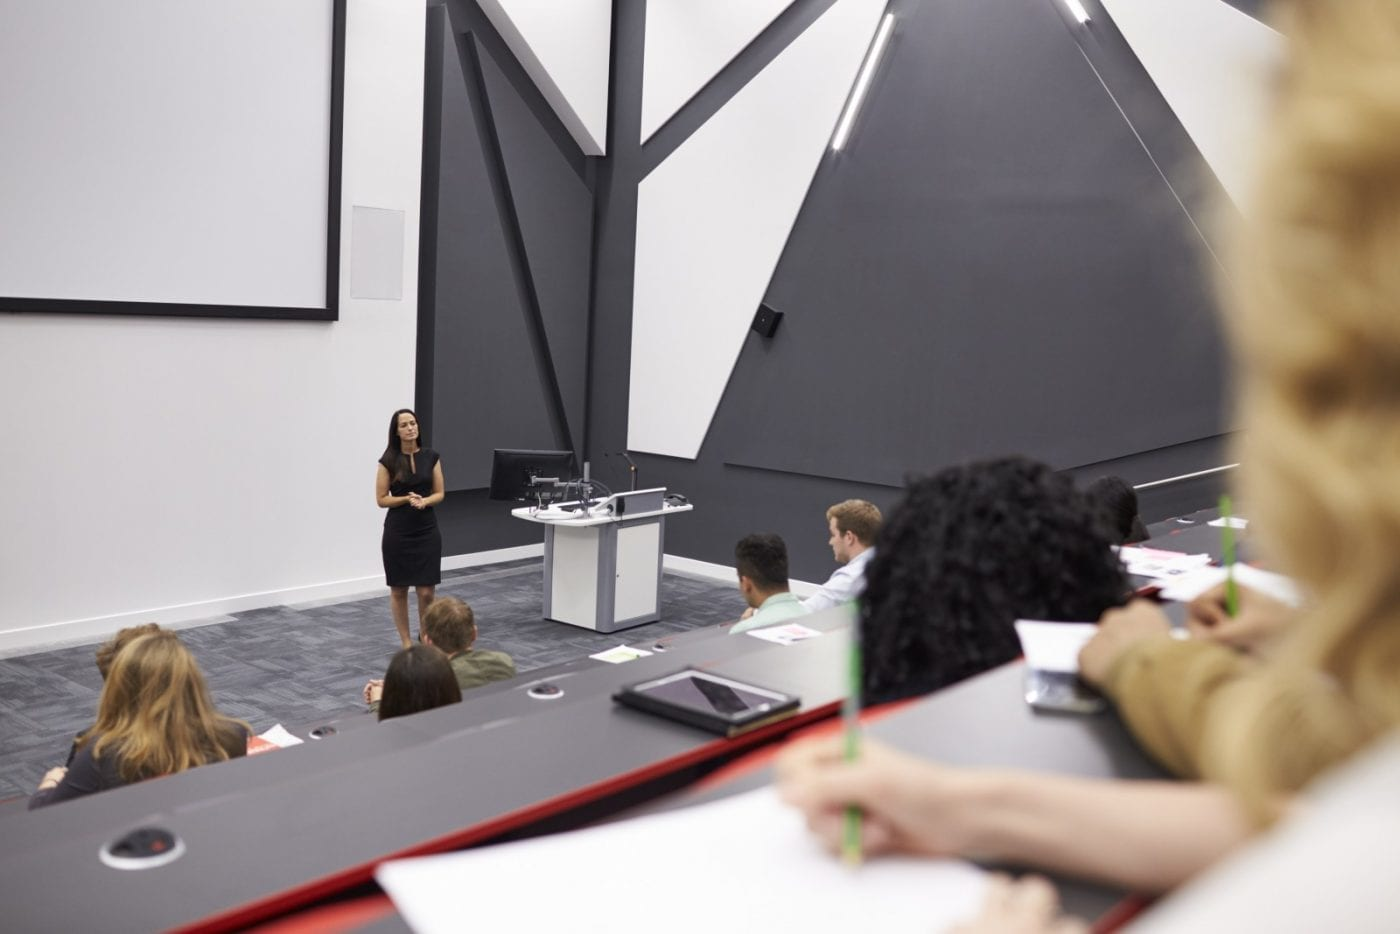 woman-lecturing-students-in-a-lecture-theatre-mid-pw3fz3y